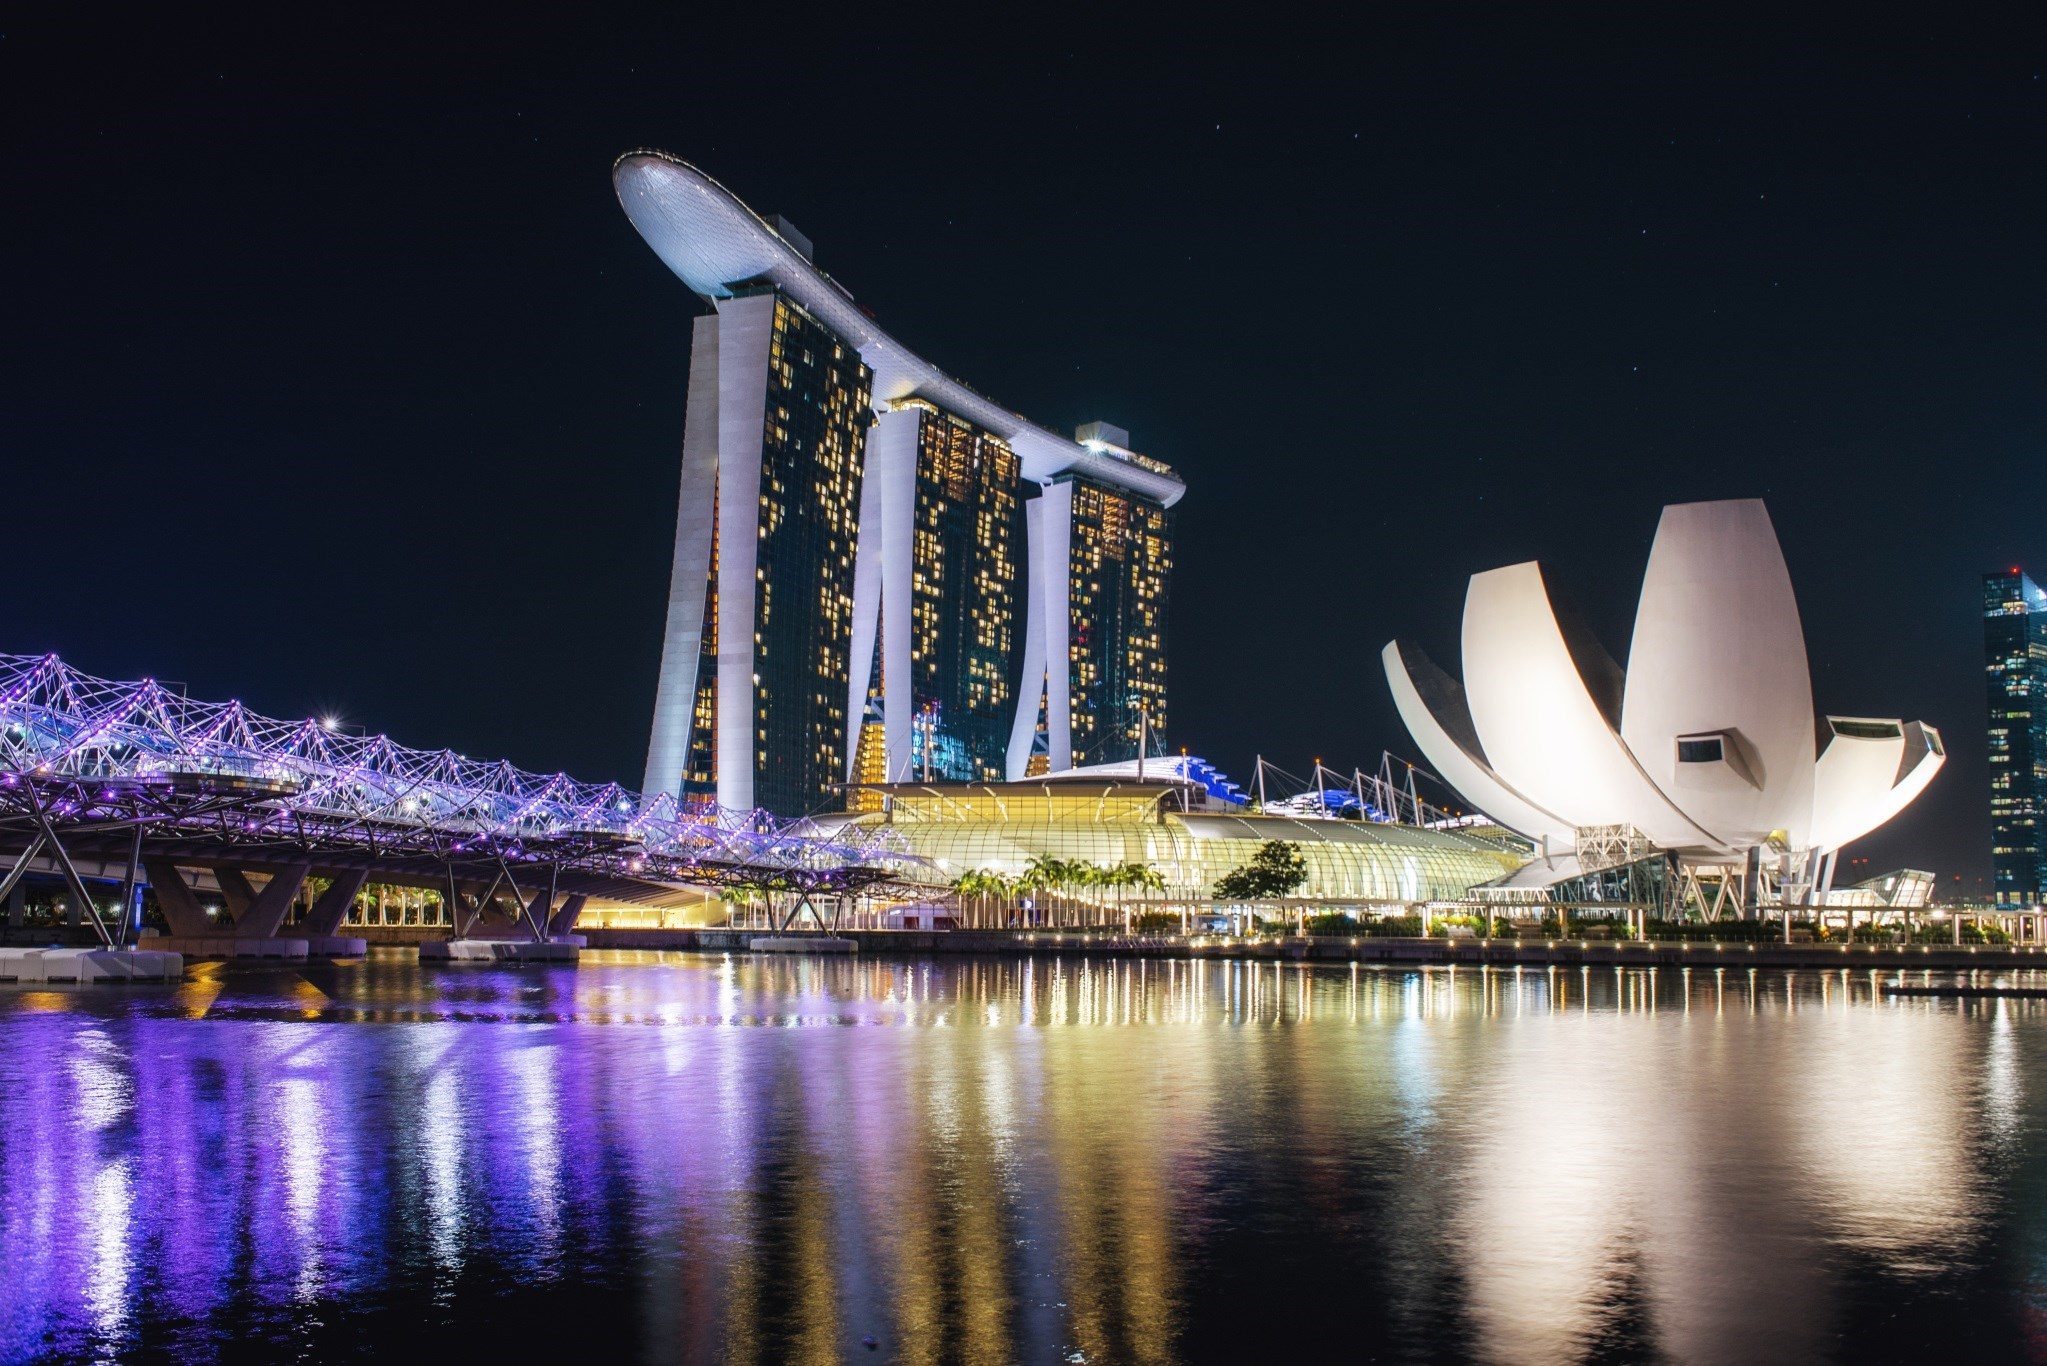 ZS opens office in Singapore